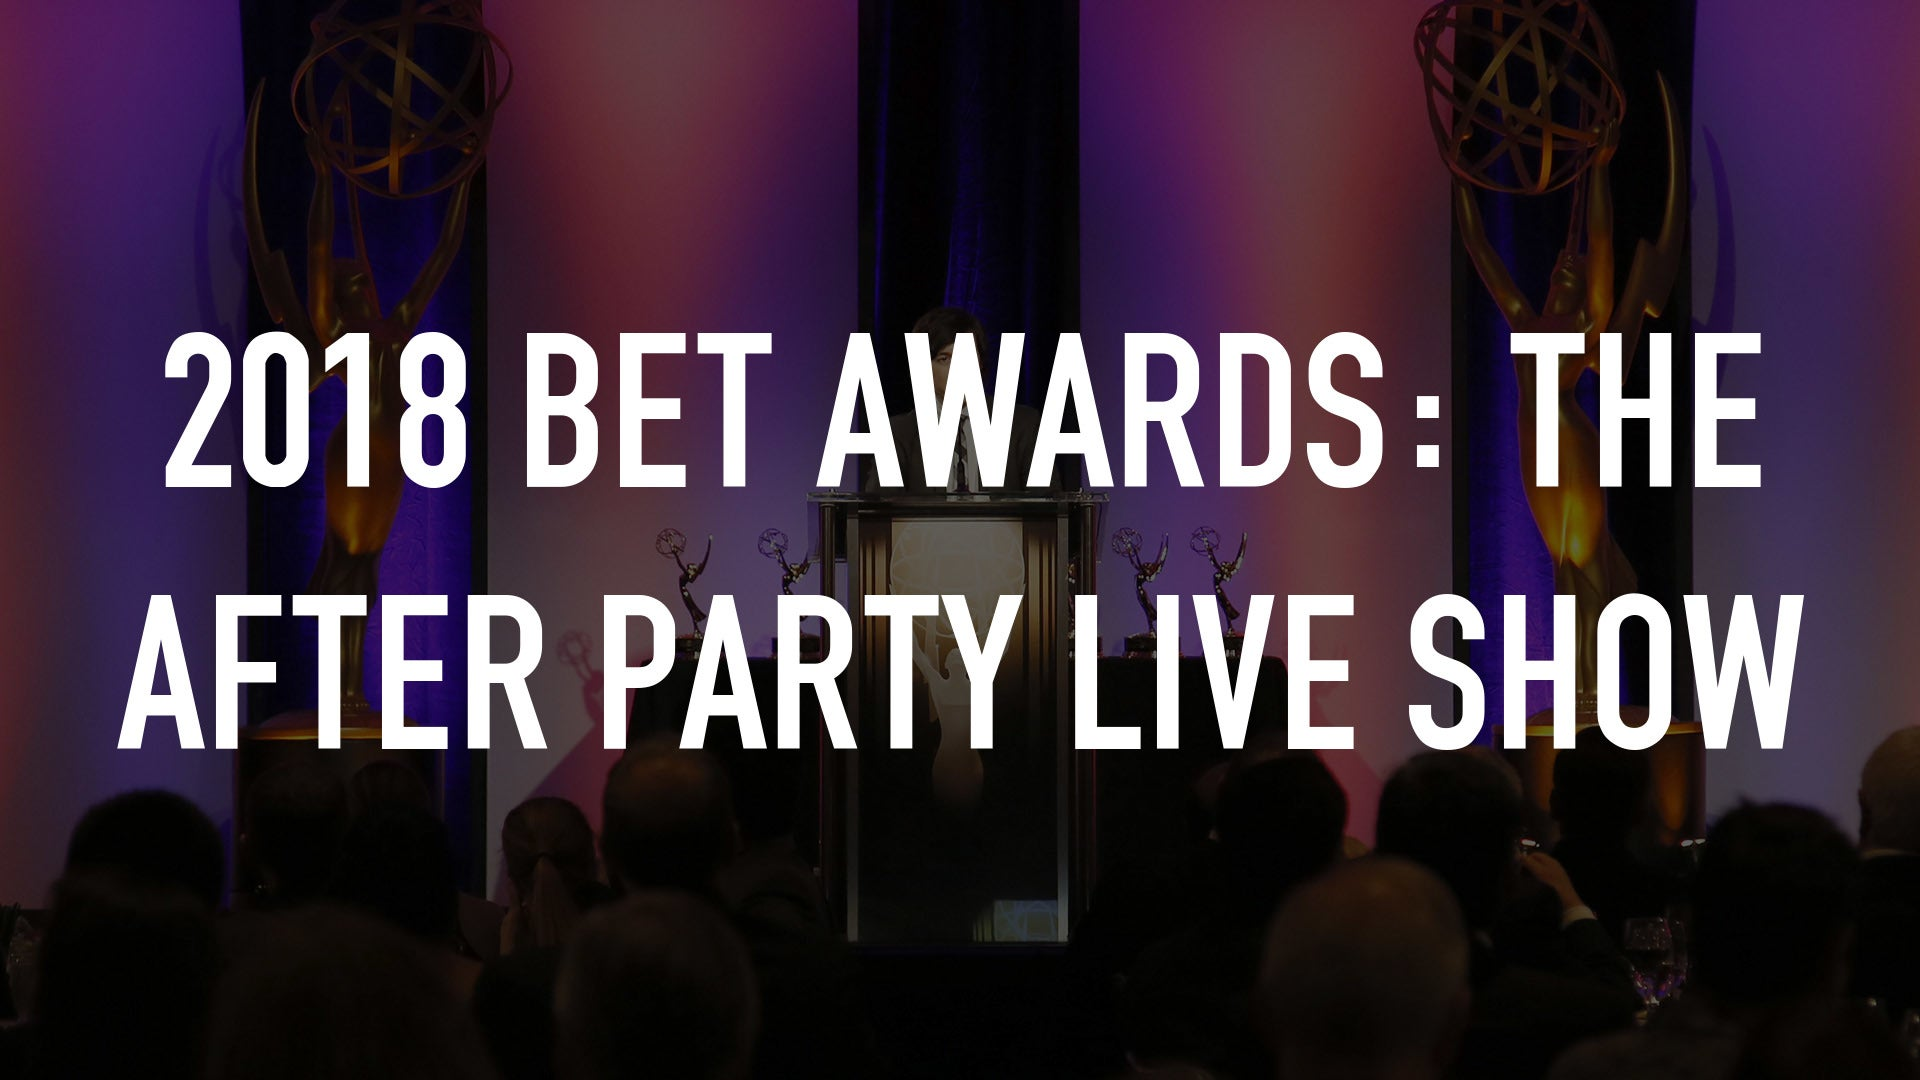 2018 BET Awards: The After Party Live Show